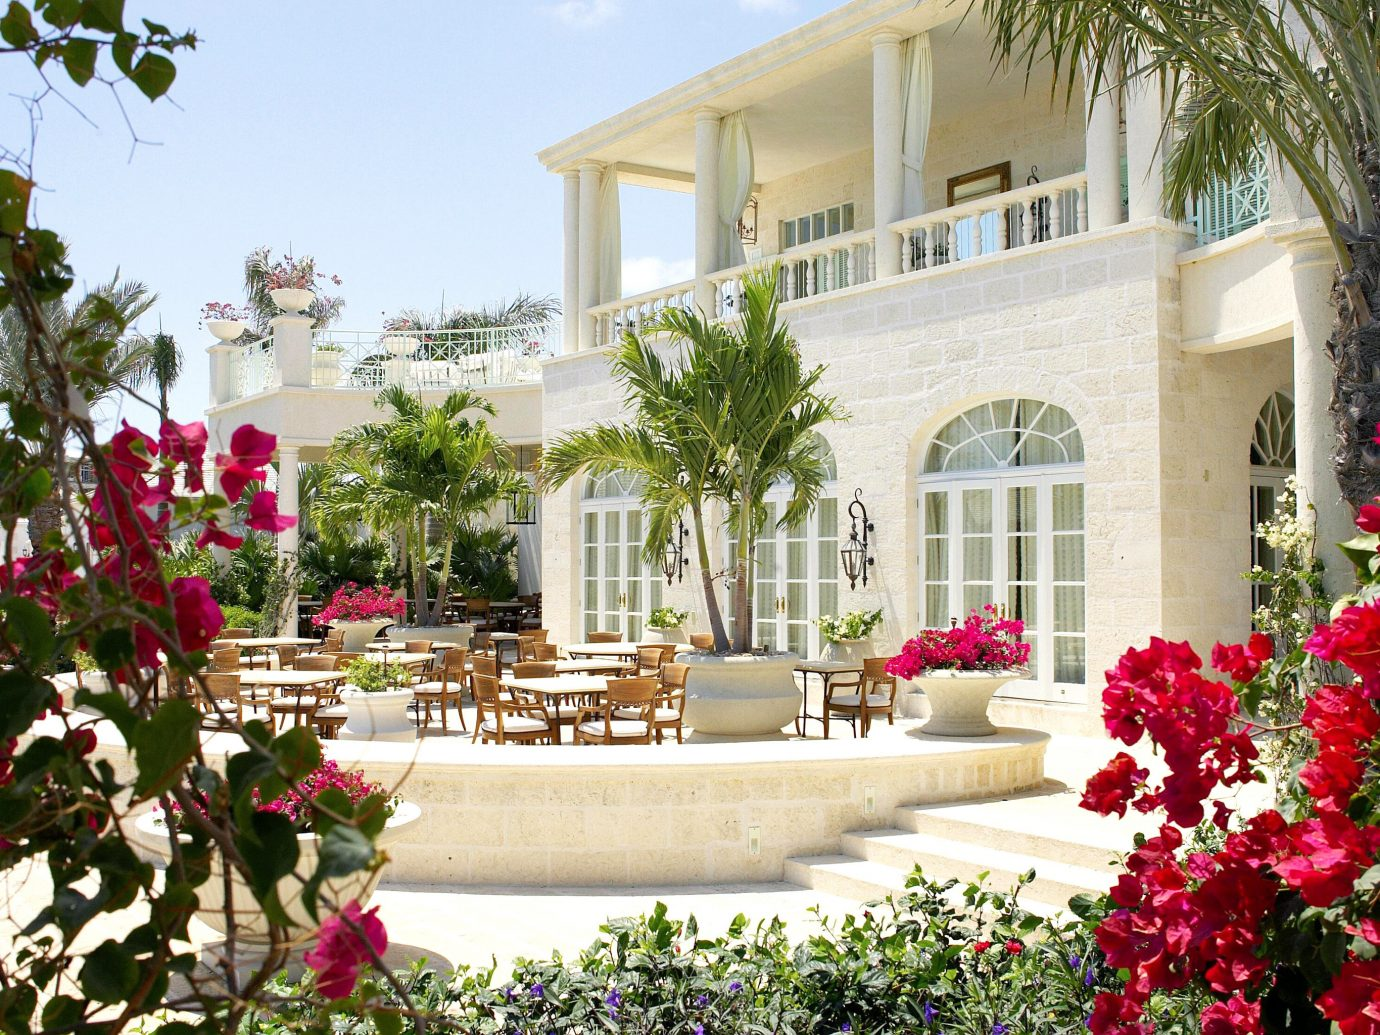 Hotels Trip Ideas flower plant tree building decorated floristry Courtyard home Garden estate residential area Resort yard backyard Christmas furniture